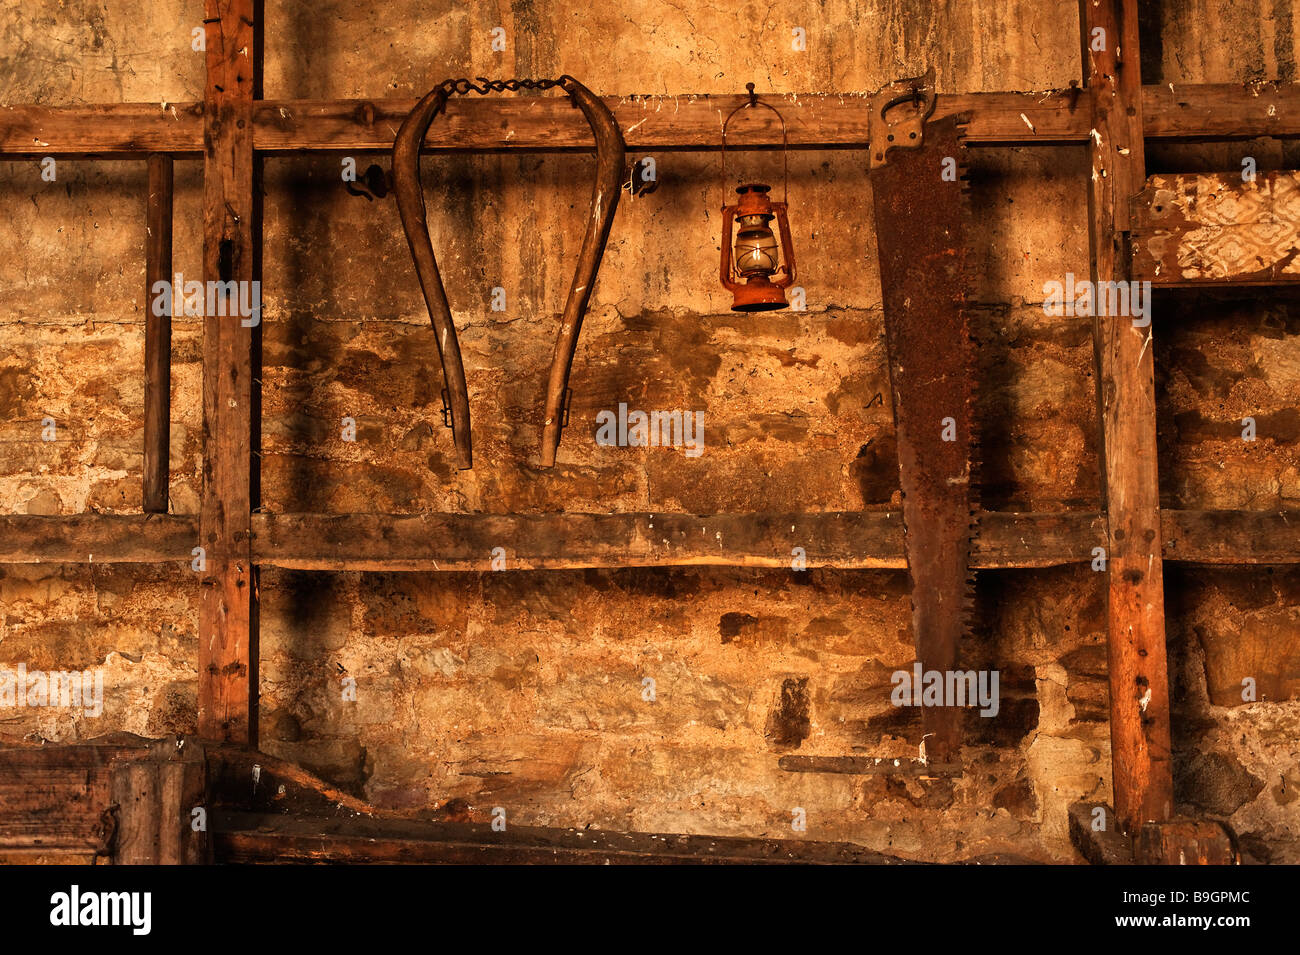 Old rusty tools hanging on stable wall - Stock Image